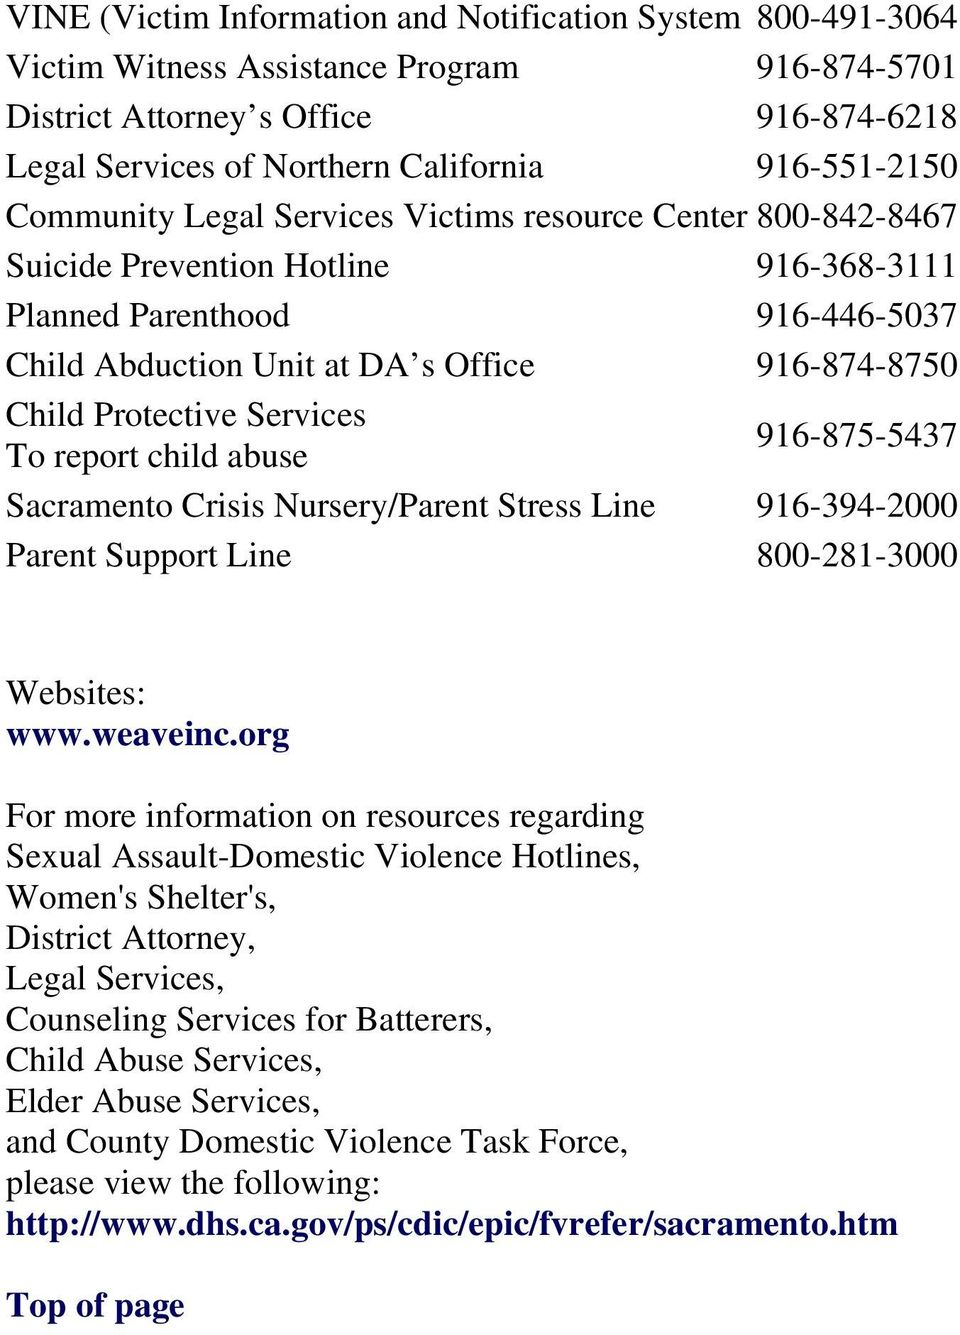 Services To report child abuse 916-875-5437 Sacramento Crisis Nursery/Parent Stress Line 916-394-2000 Parent Support Line 800-281-3000 Websites: www.weaveinc.